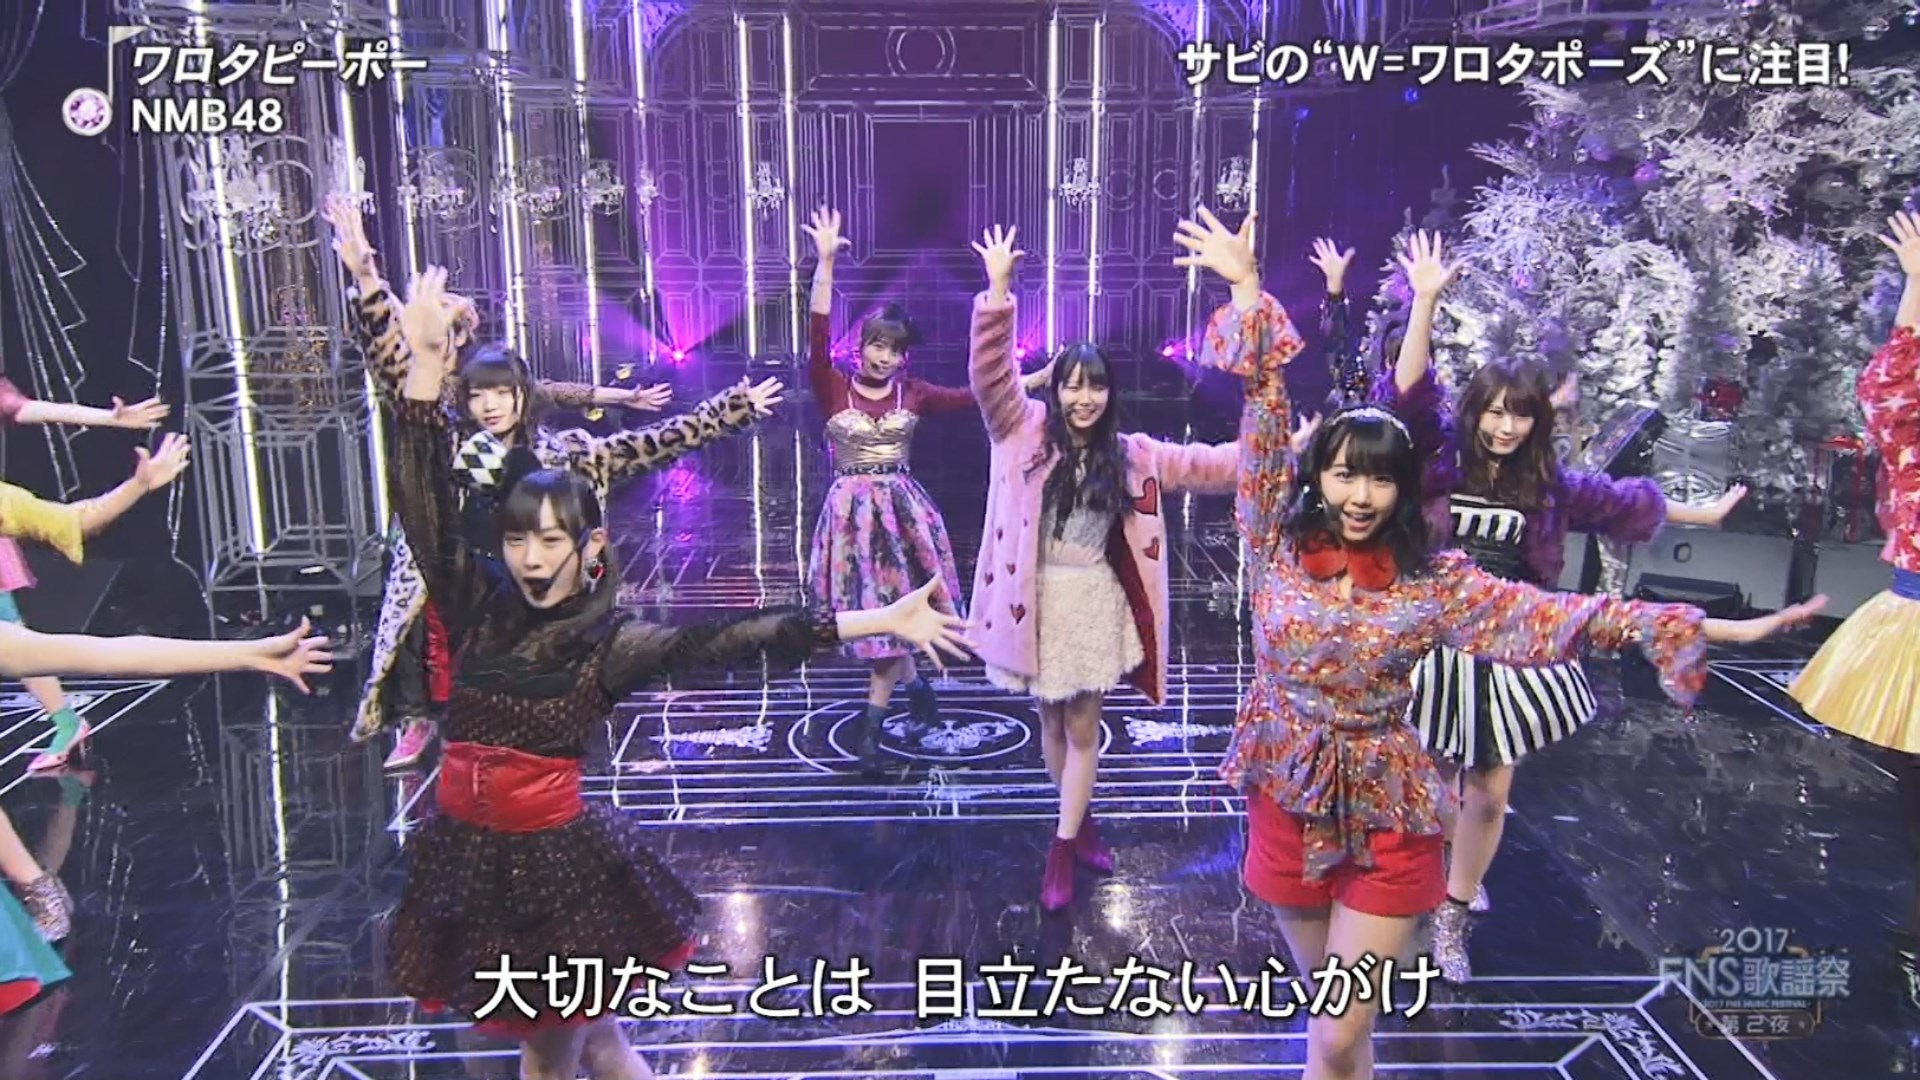 2017FNS歌謡祭第2夜・NMB48ワロタピーポーキャプ-041